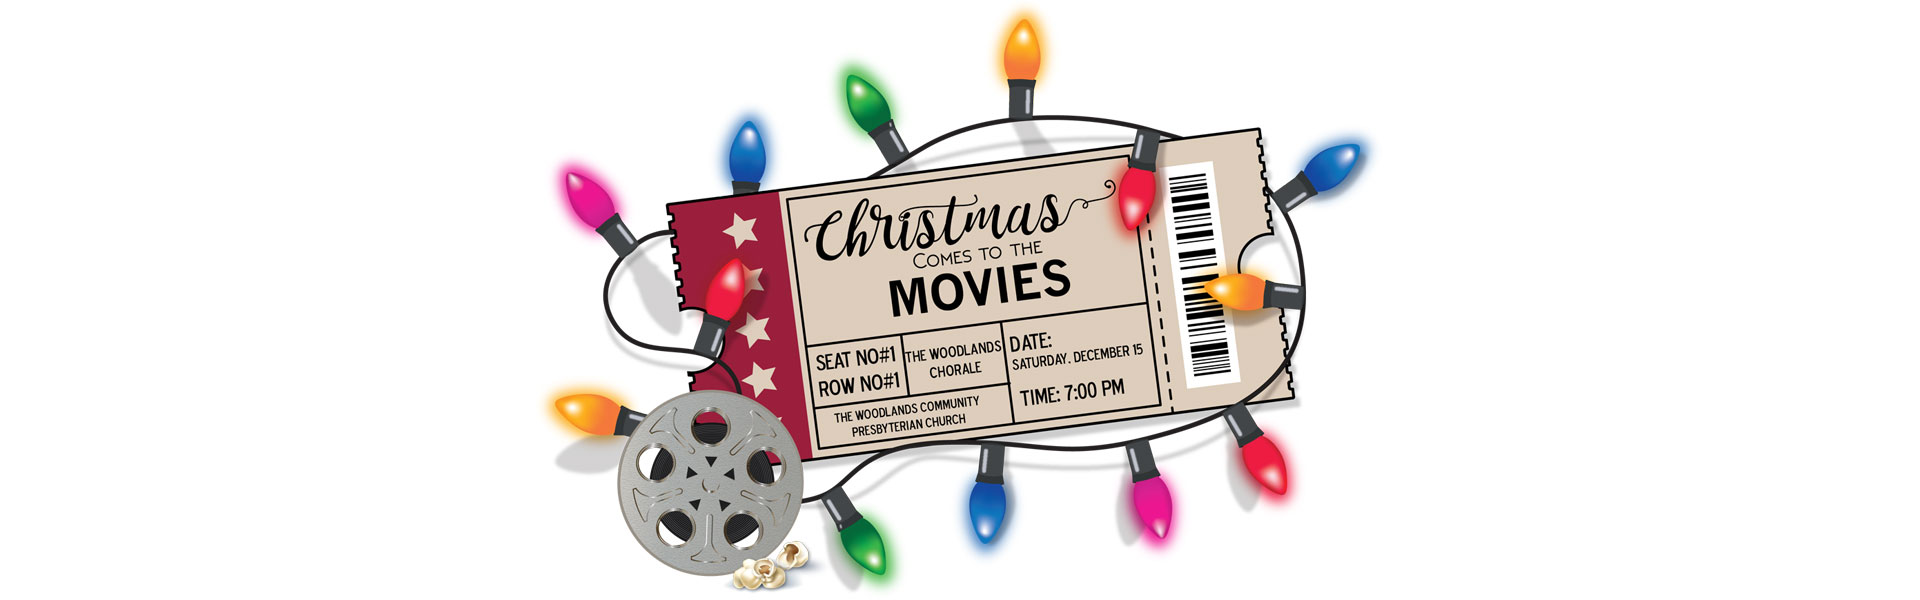 Christmas Comes to the Movies